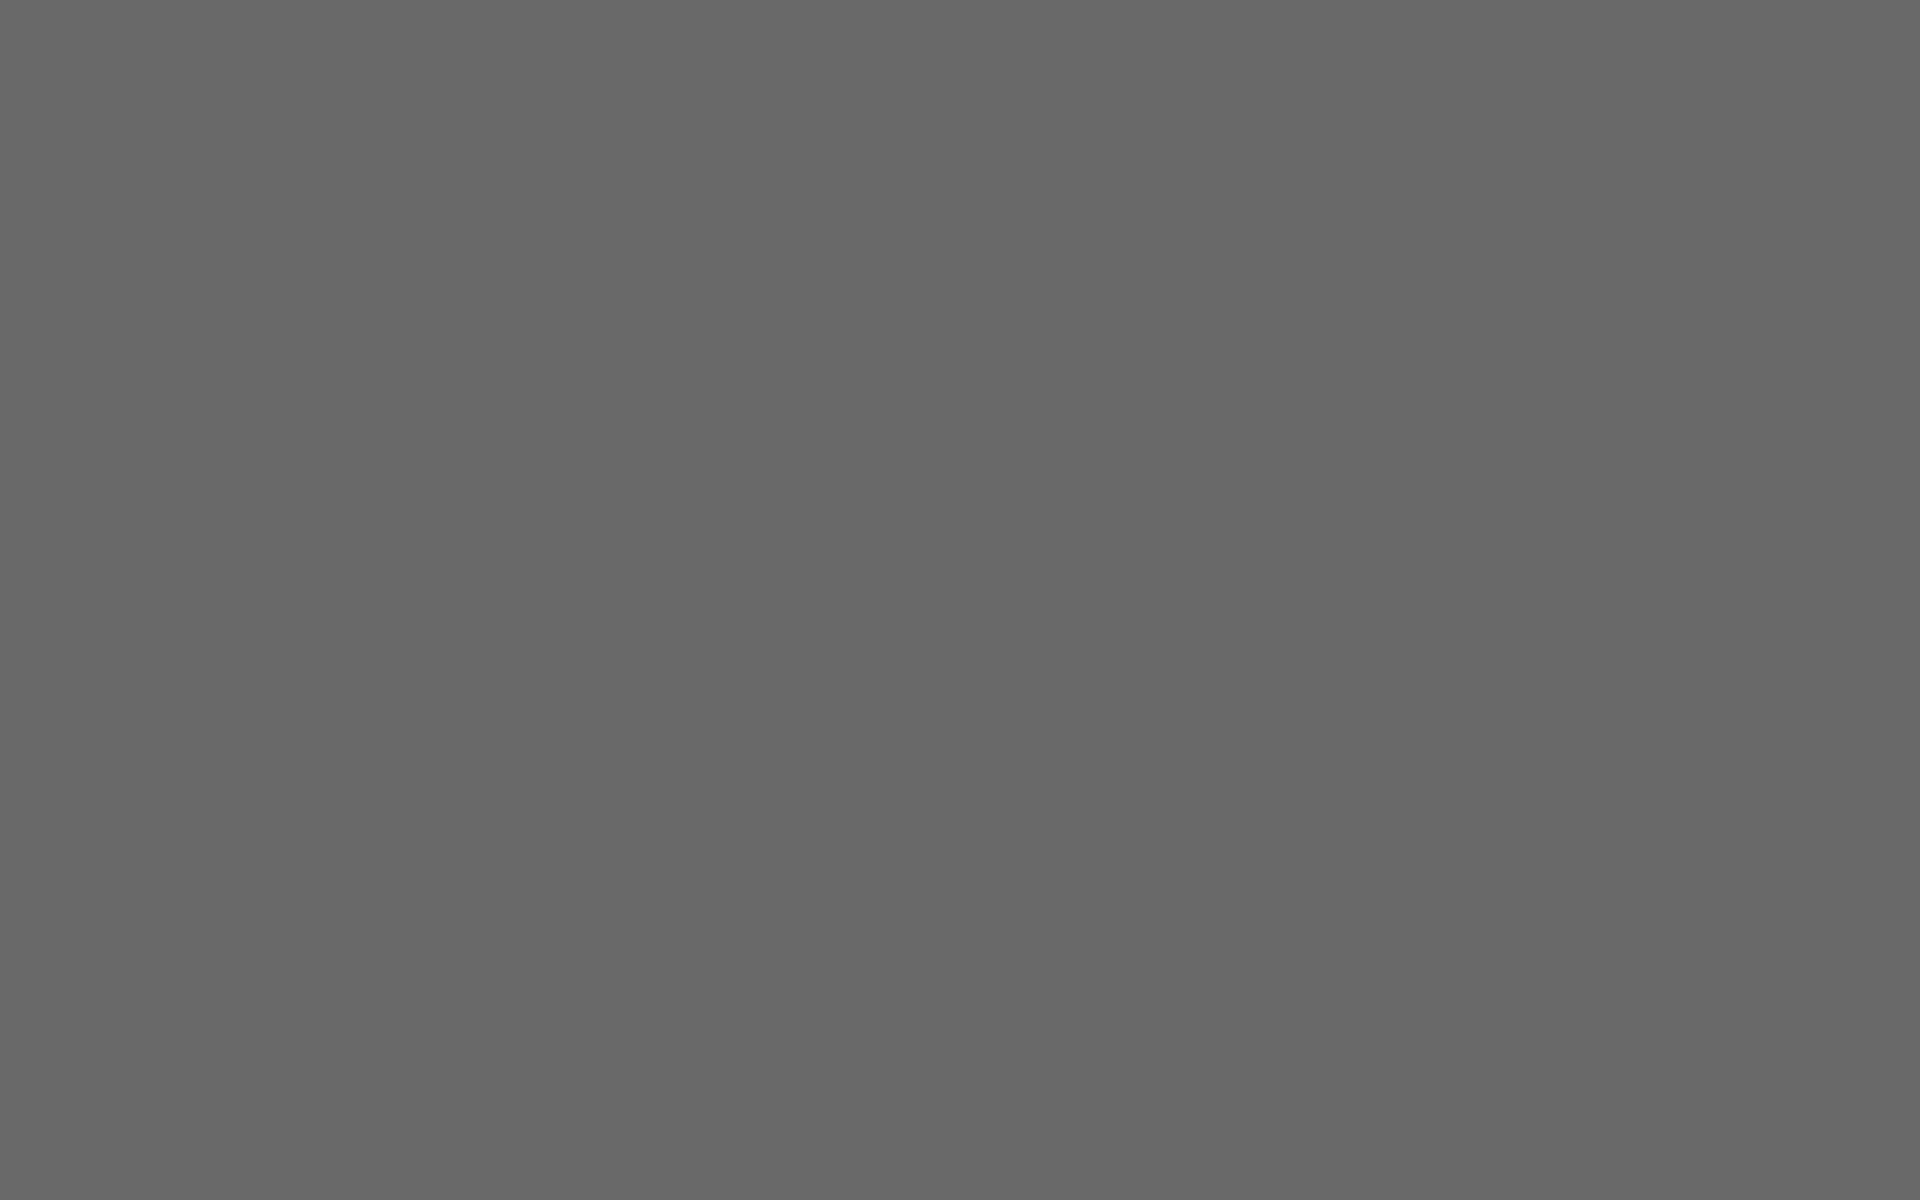 1920x1200 Dim Gray Solid Color Background